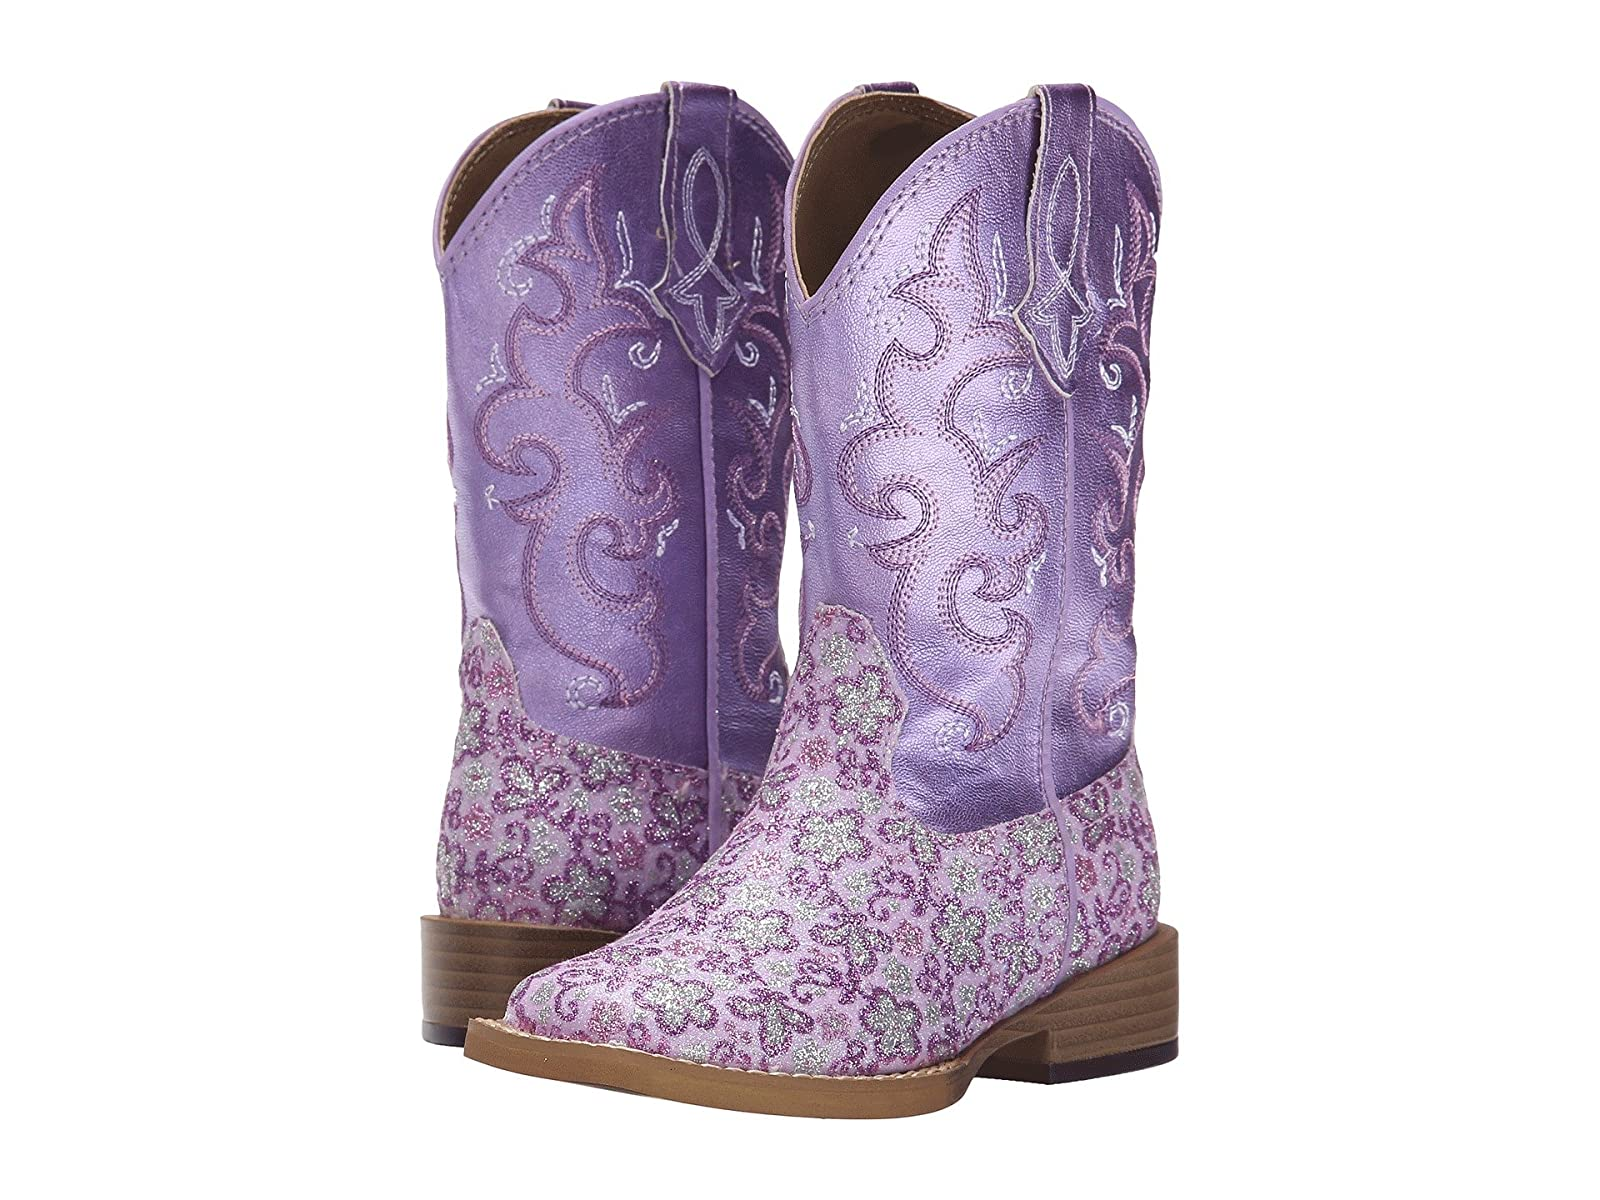 Roper Kids Lavender Square Toe Boot (Toddler/Little Kid)Economical and quality shoes